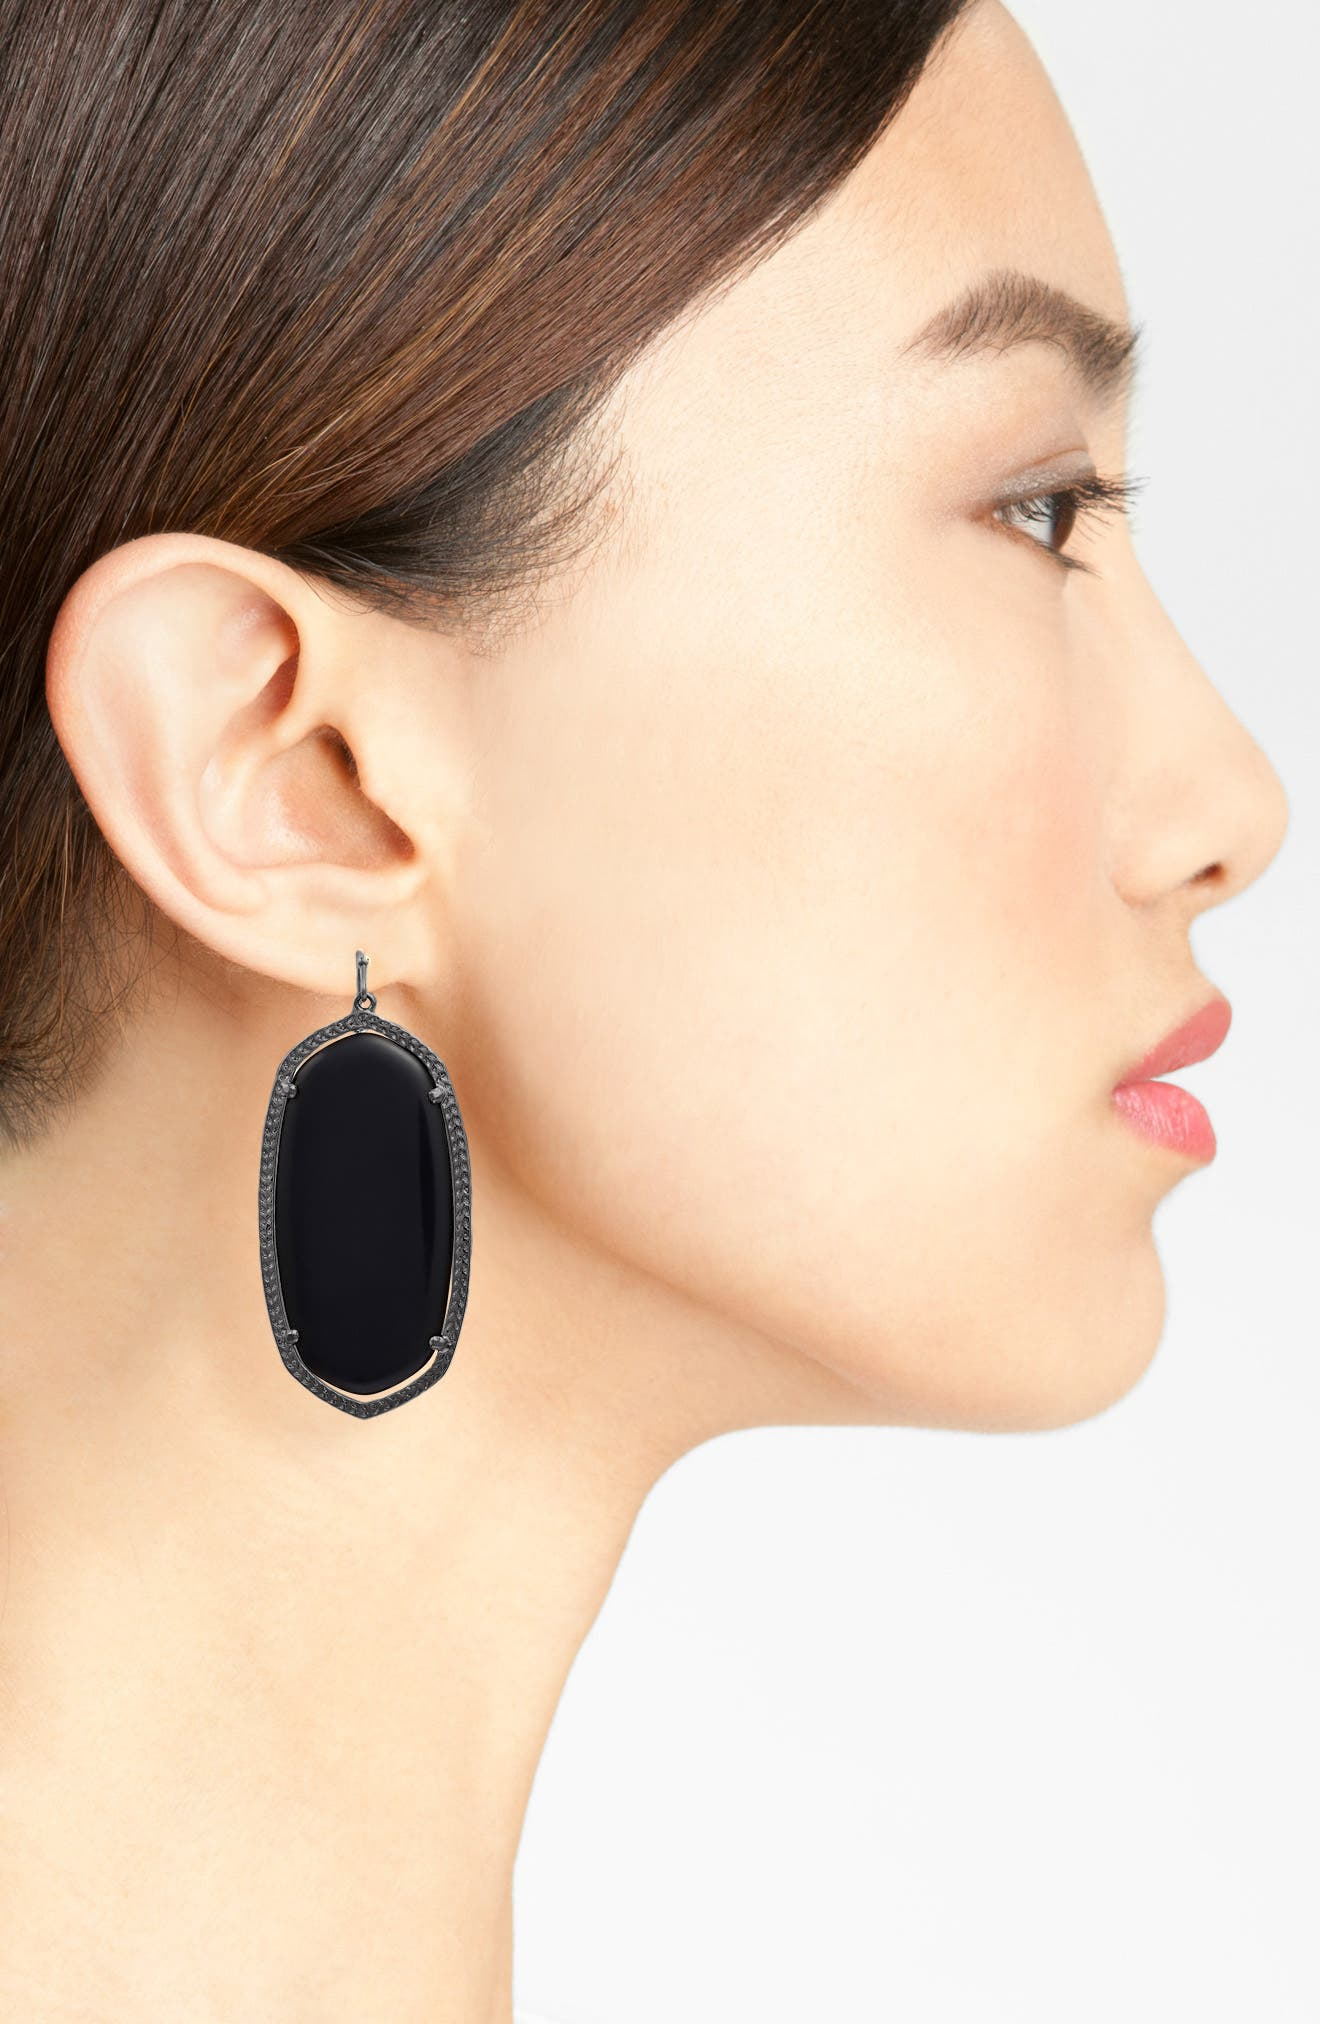 Danielle - Large Oval Statement Earrings,                             Alternate thumbnail 126, color,